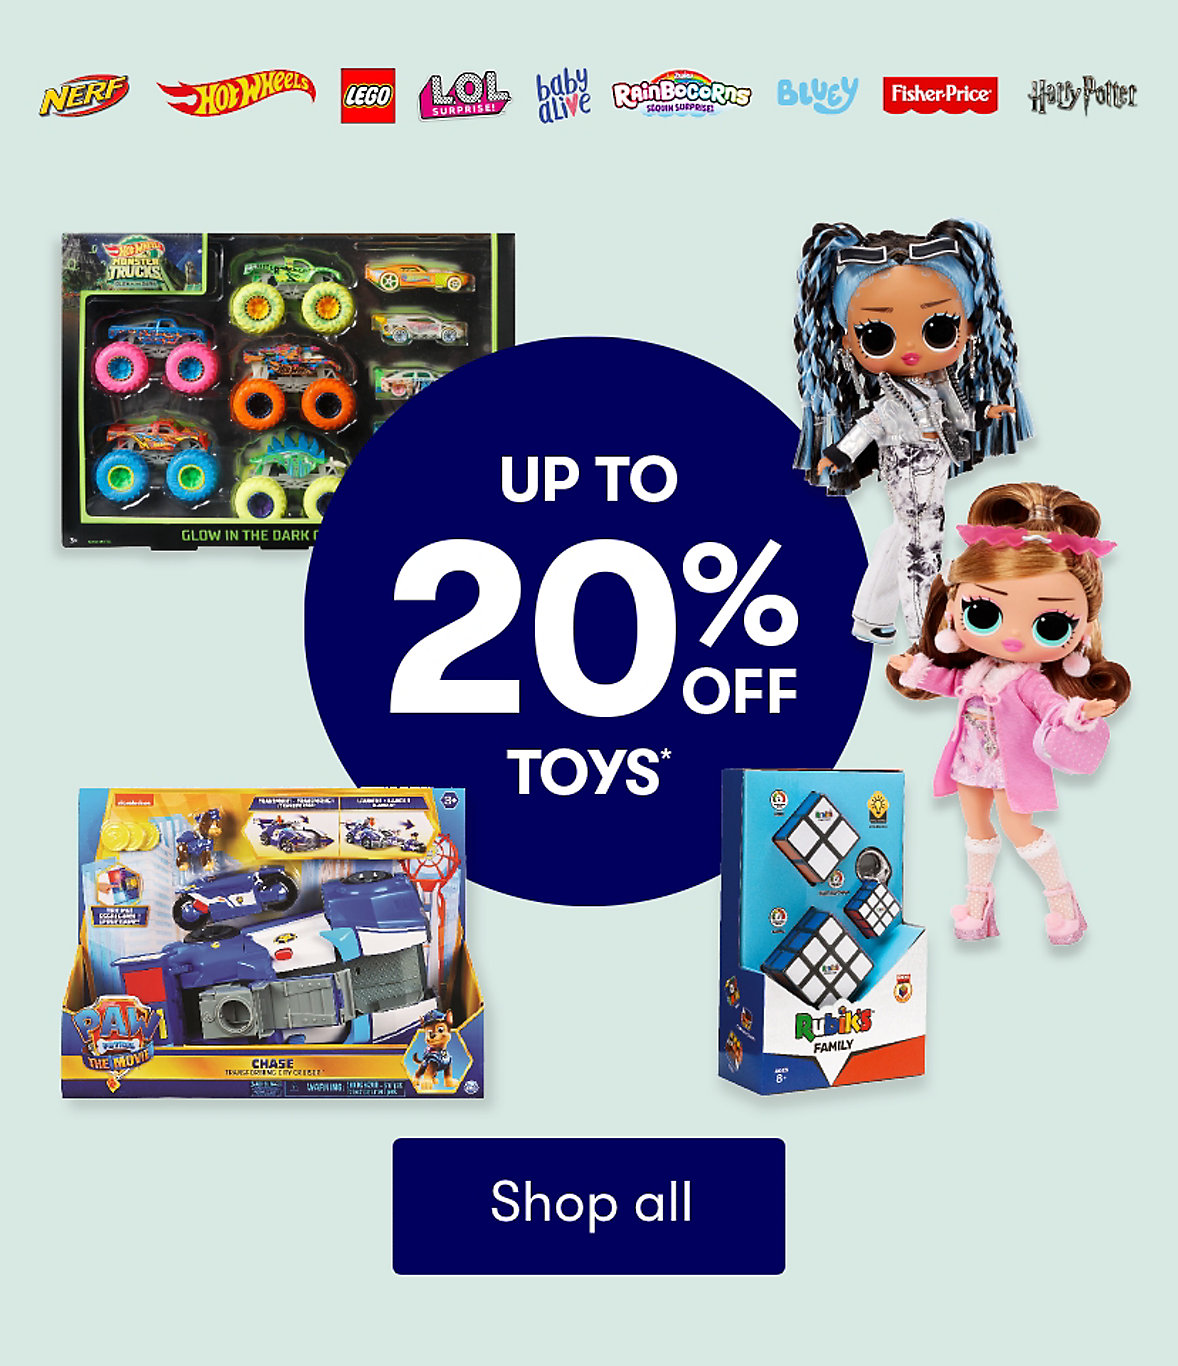 Up to 20% off Toys